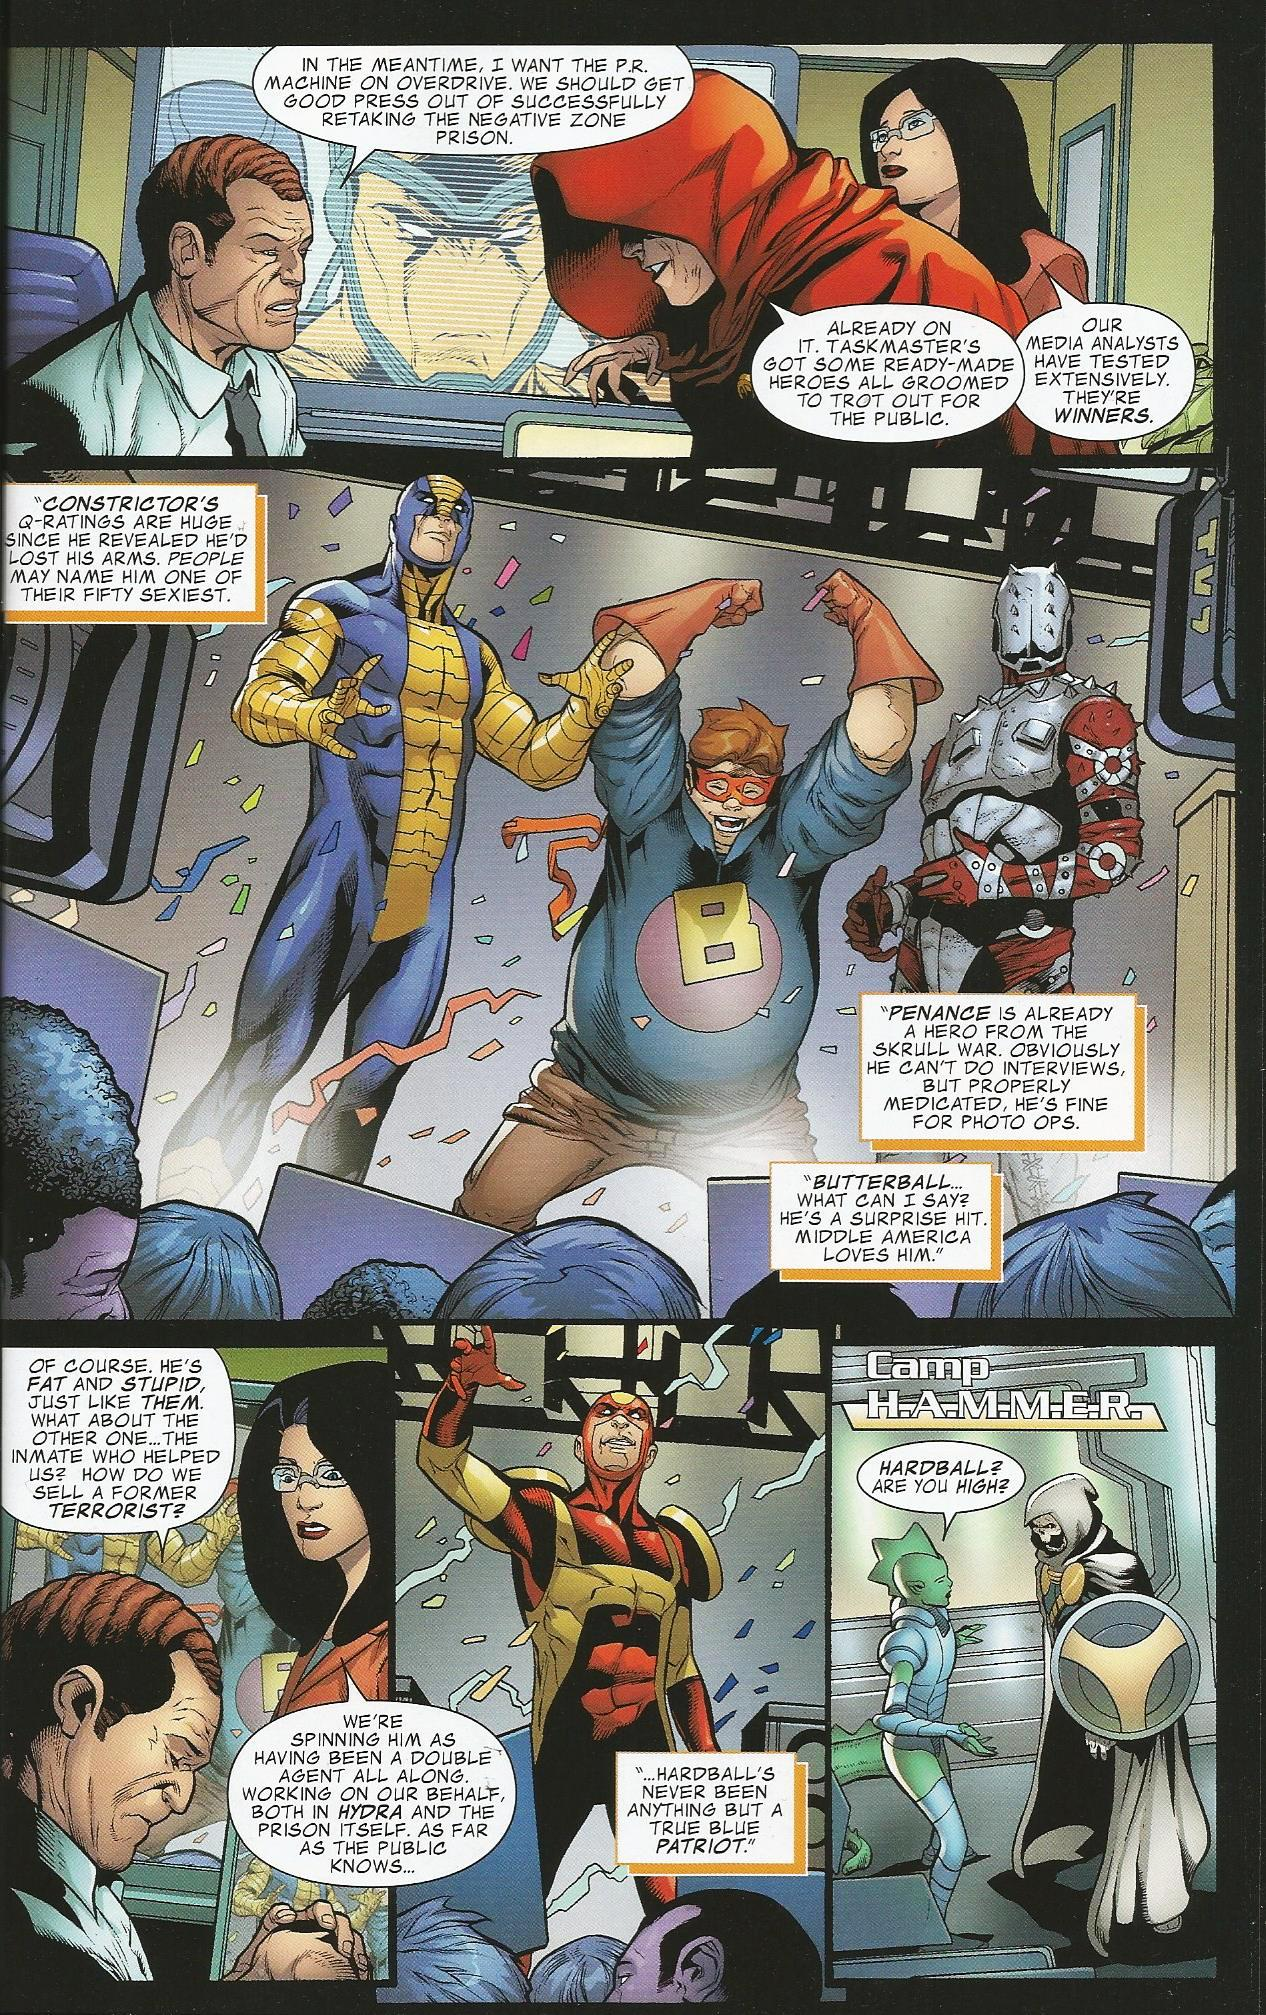 Avengers the Initiative Dreams & Nightmares review